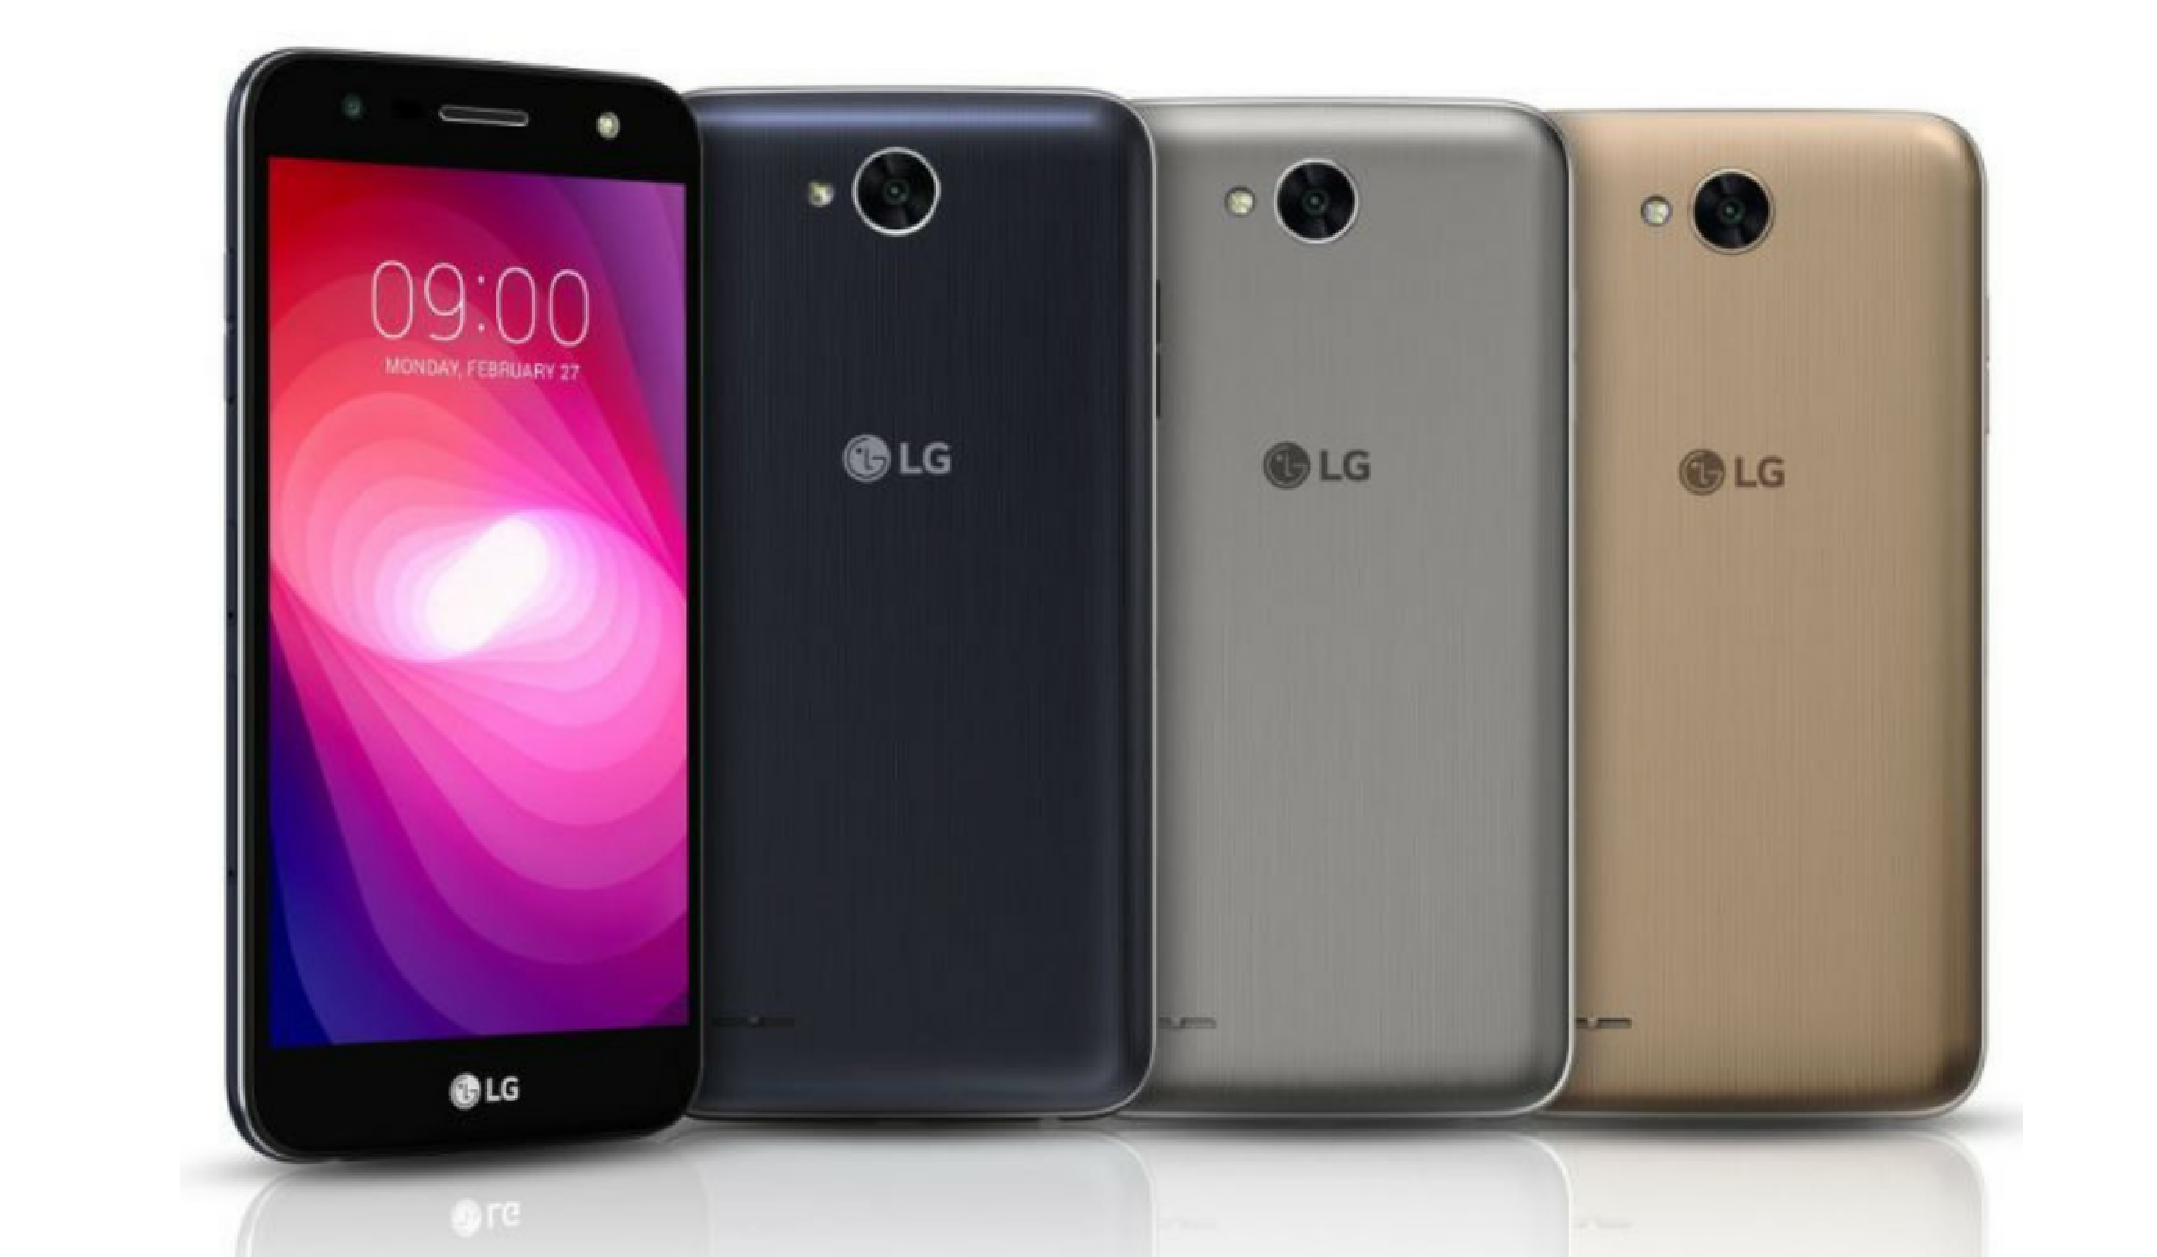 LG X Power 2 Smartphone announced with Android 7 0 Nougat